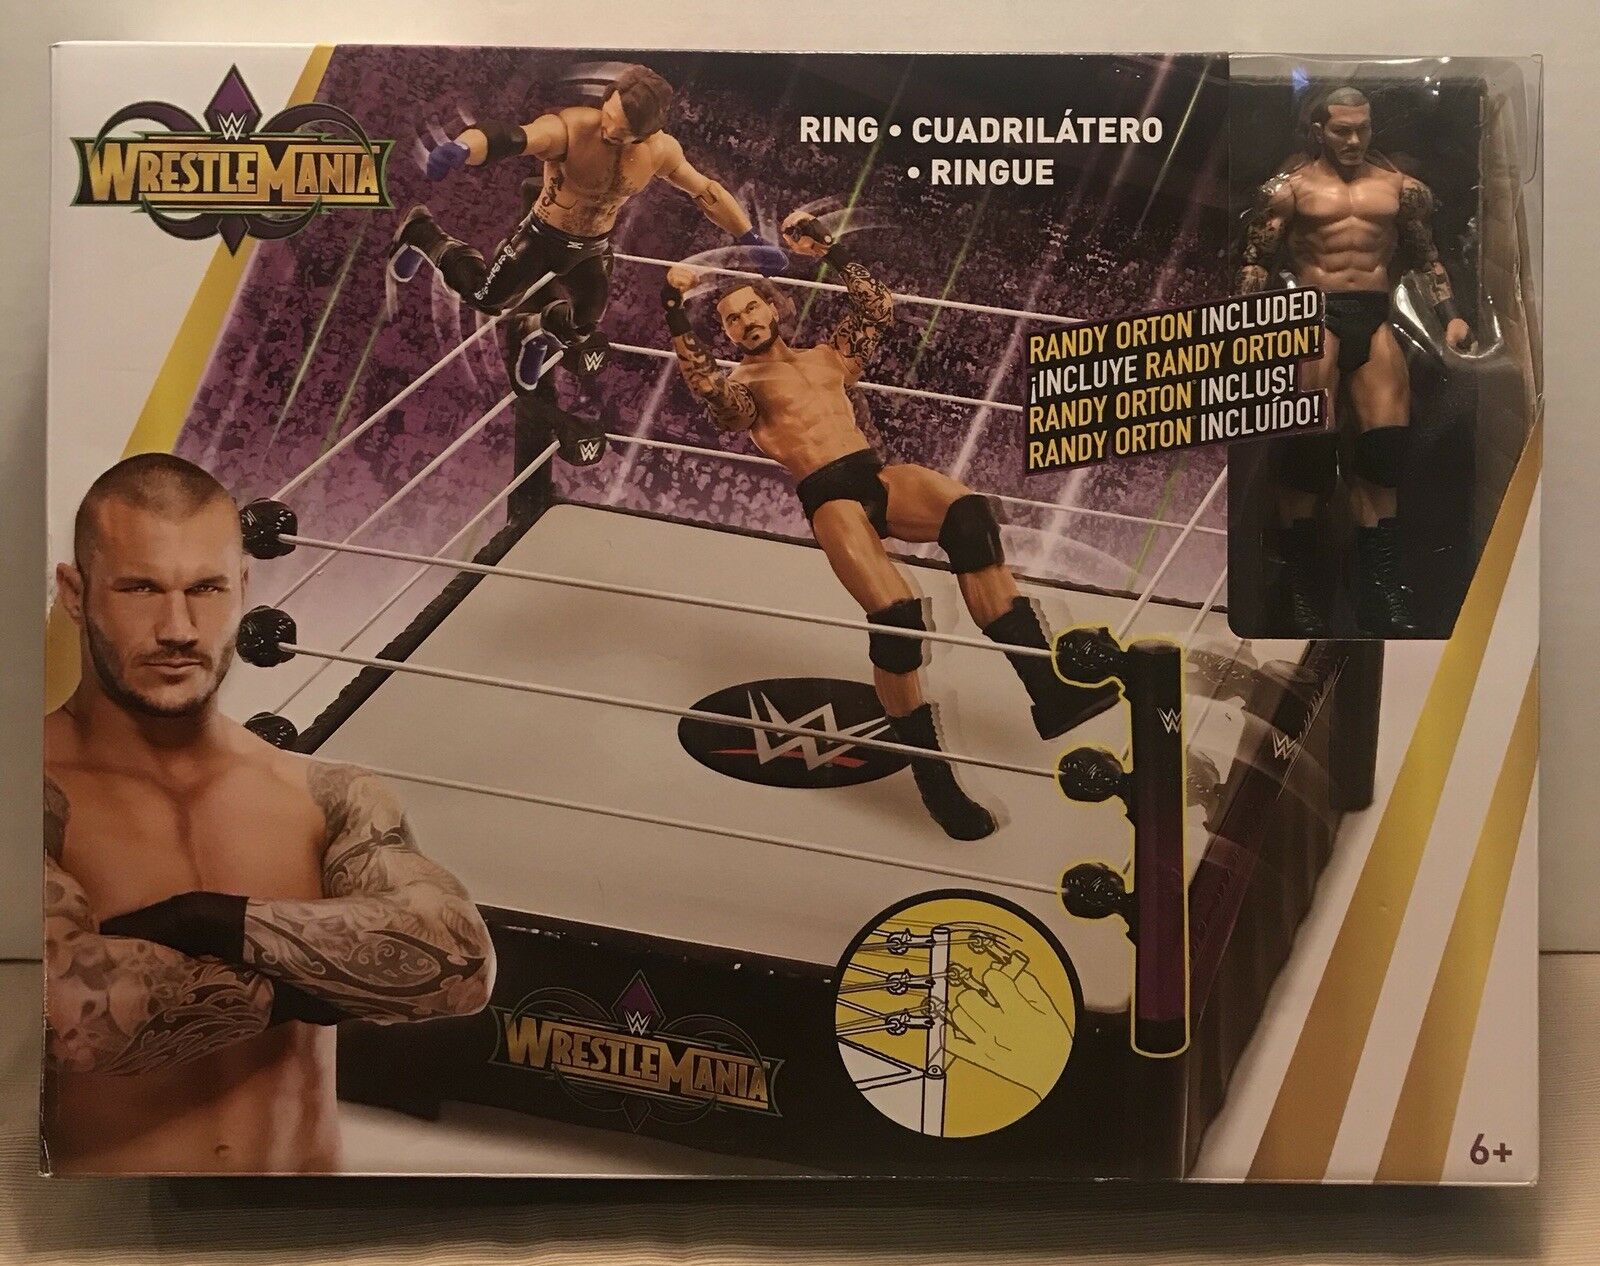 WWE Wrestlemania 34 New Orleans Ring with Randy Orton Exclusive Figure